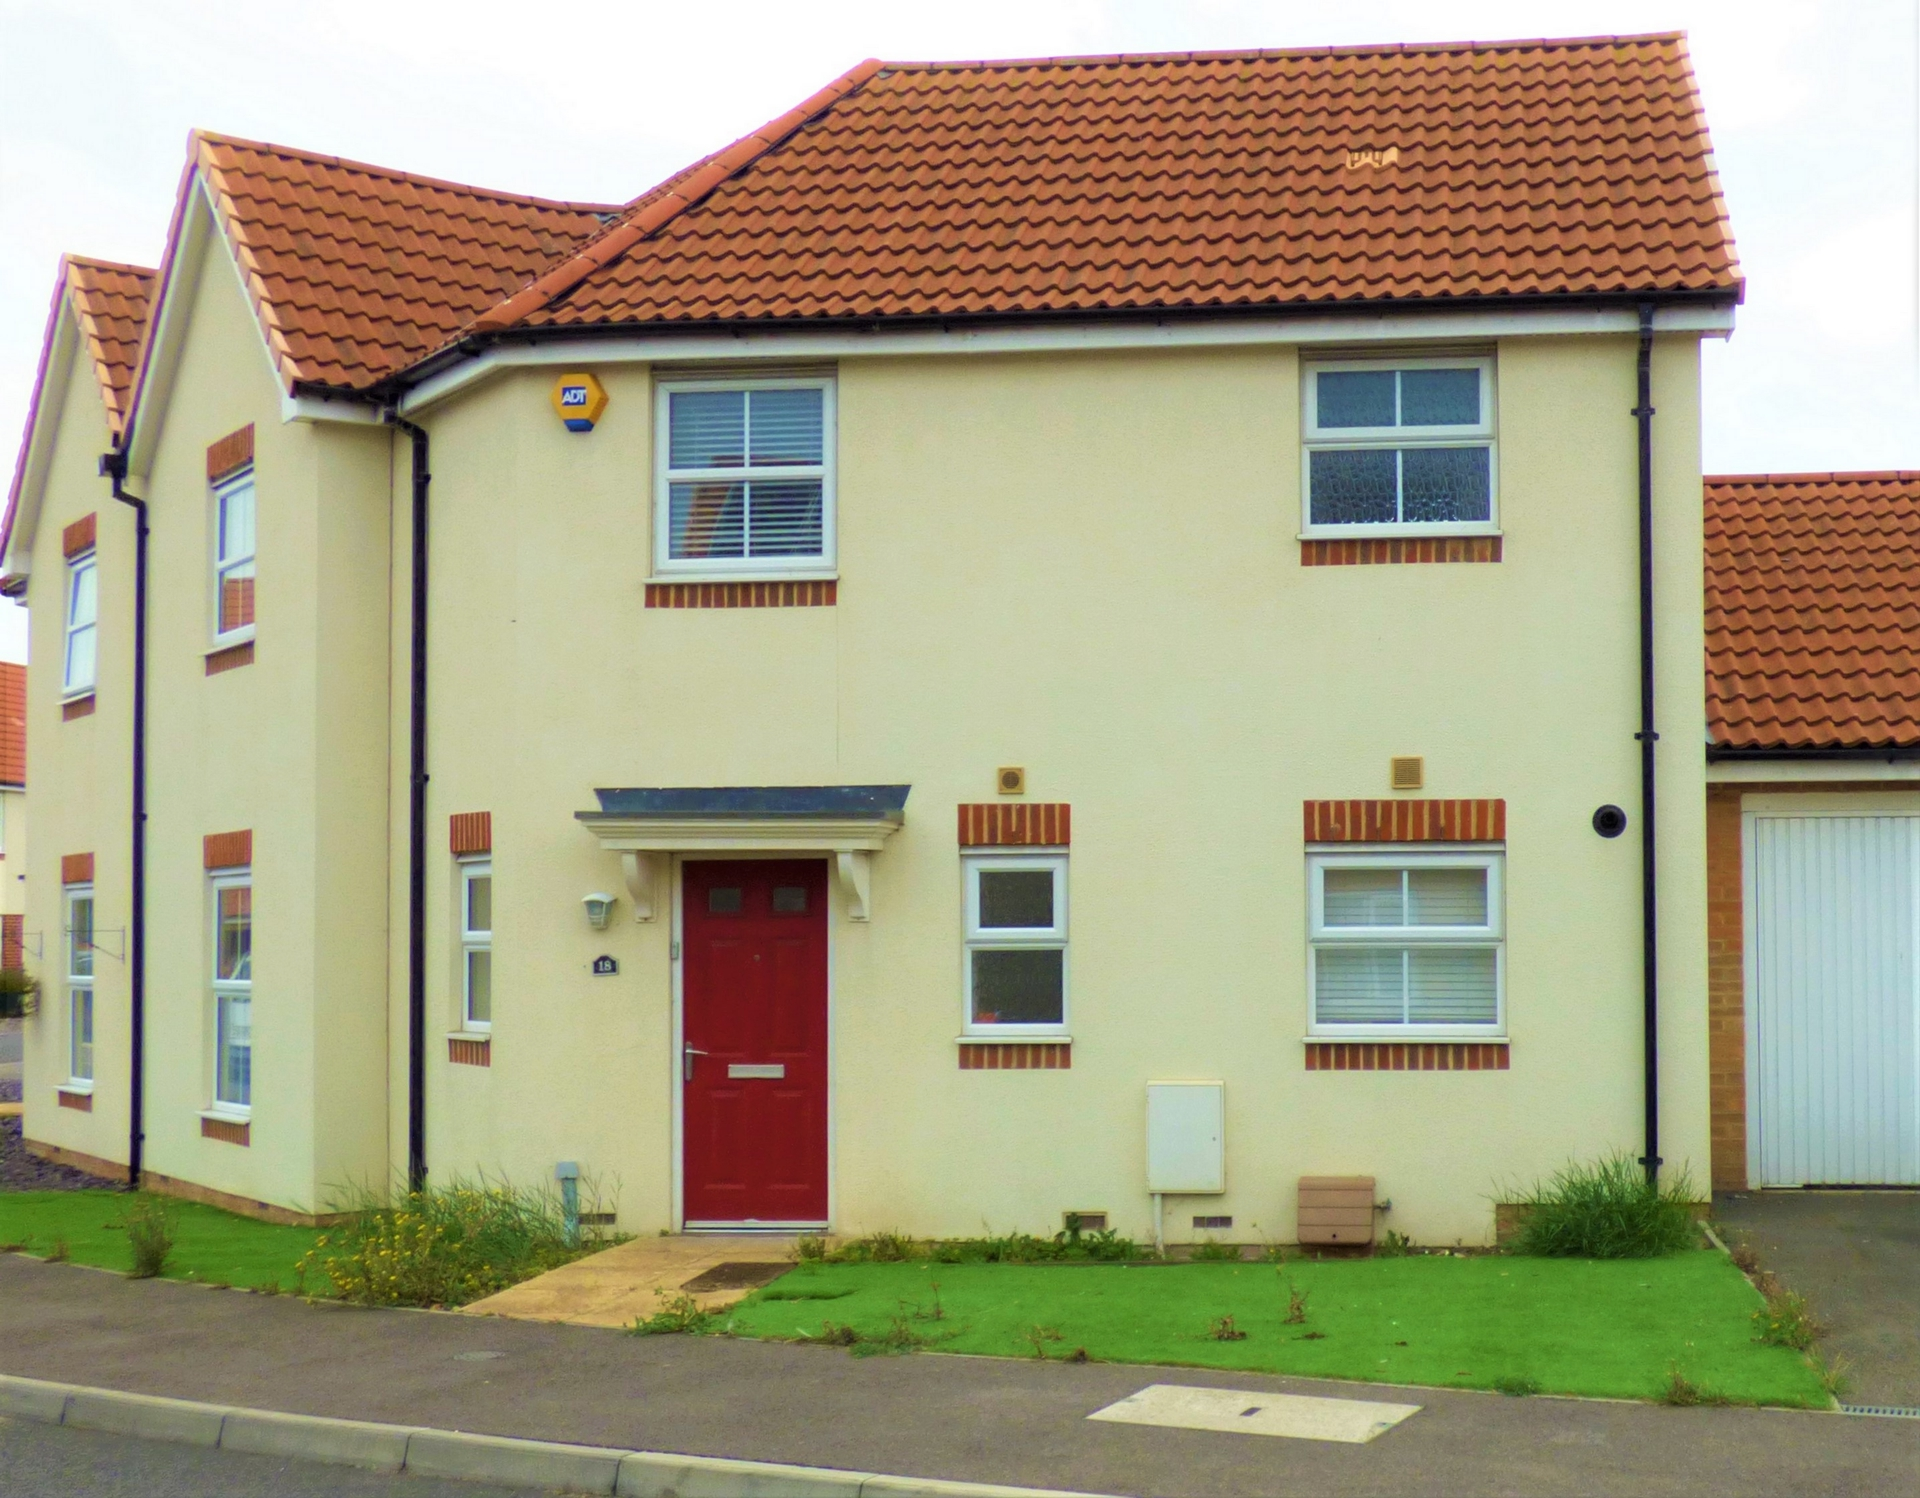 3 bed house to rent in Hereson Road, Broadstairs, CT10, CT10